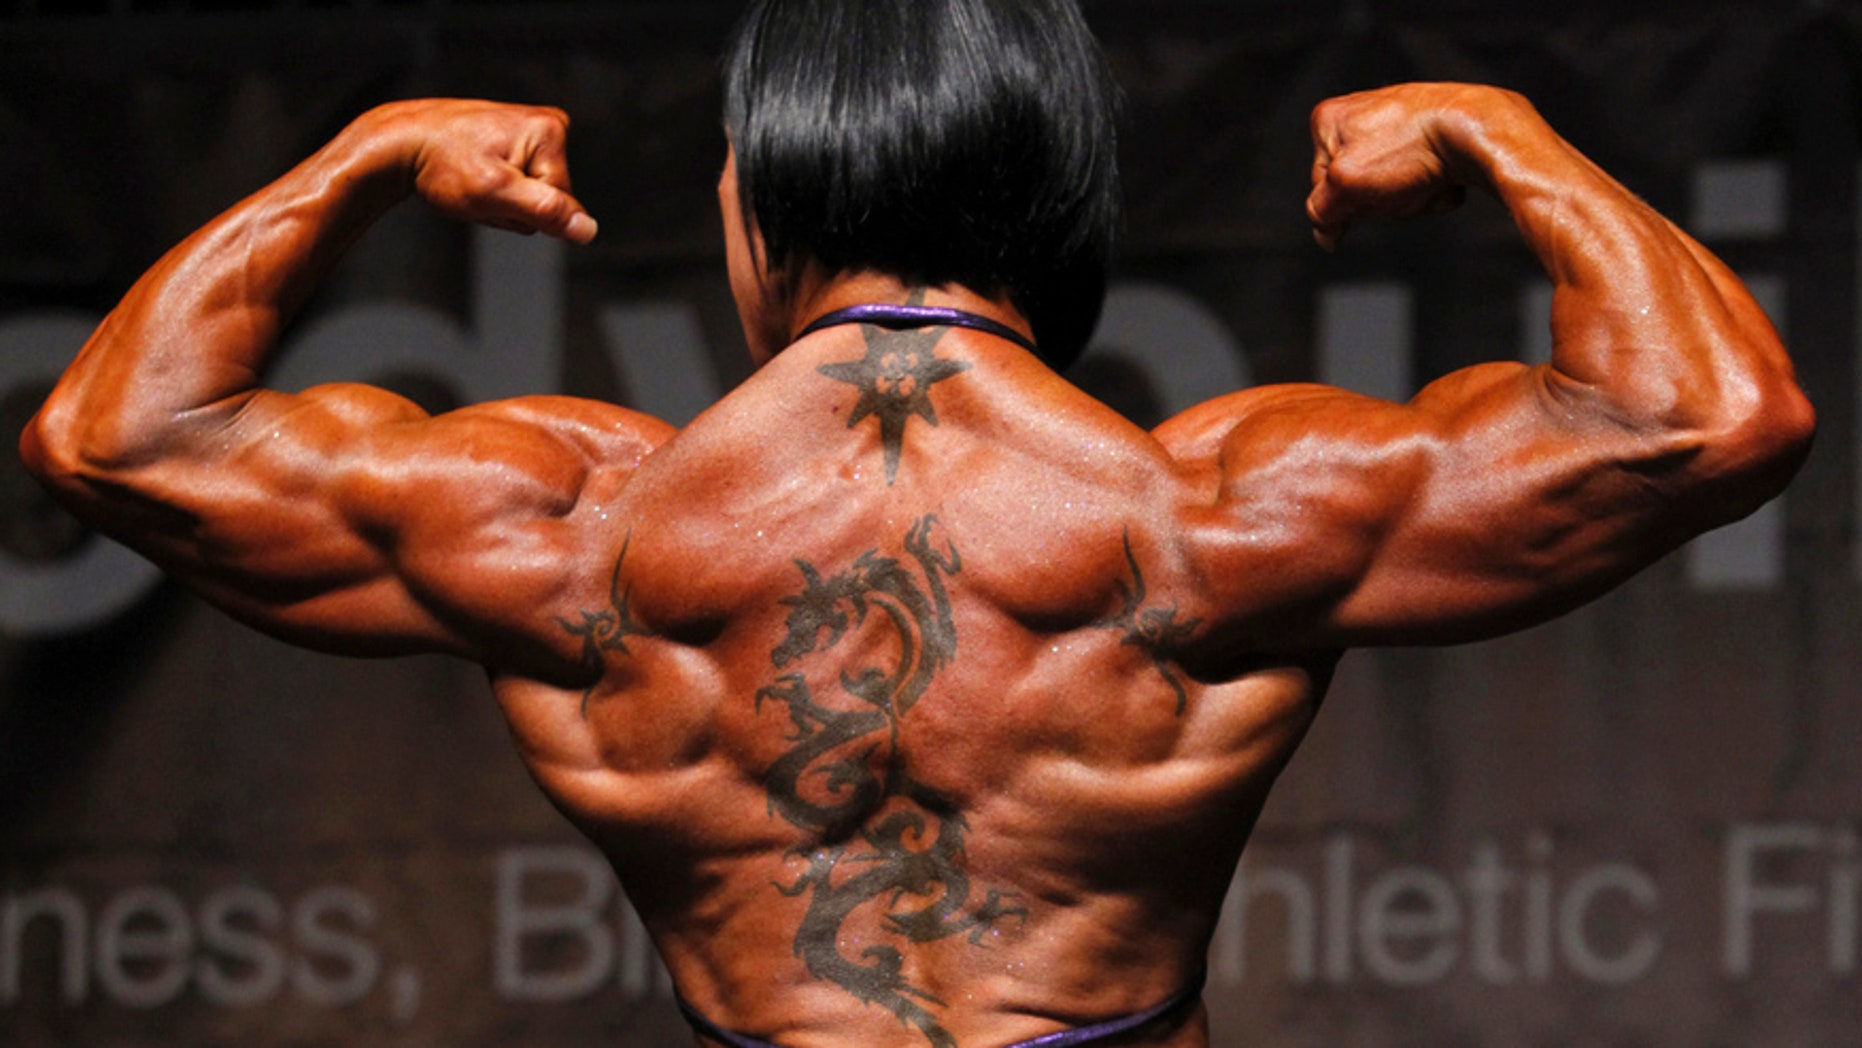 May 13, 2012: A participant poses during the European Bodybuilding Competition in Zagreb.